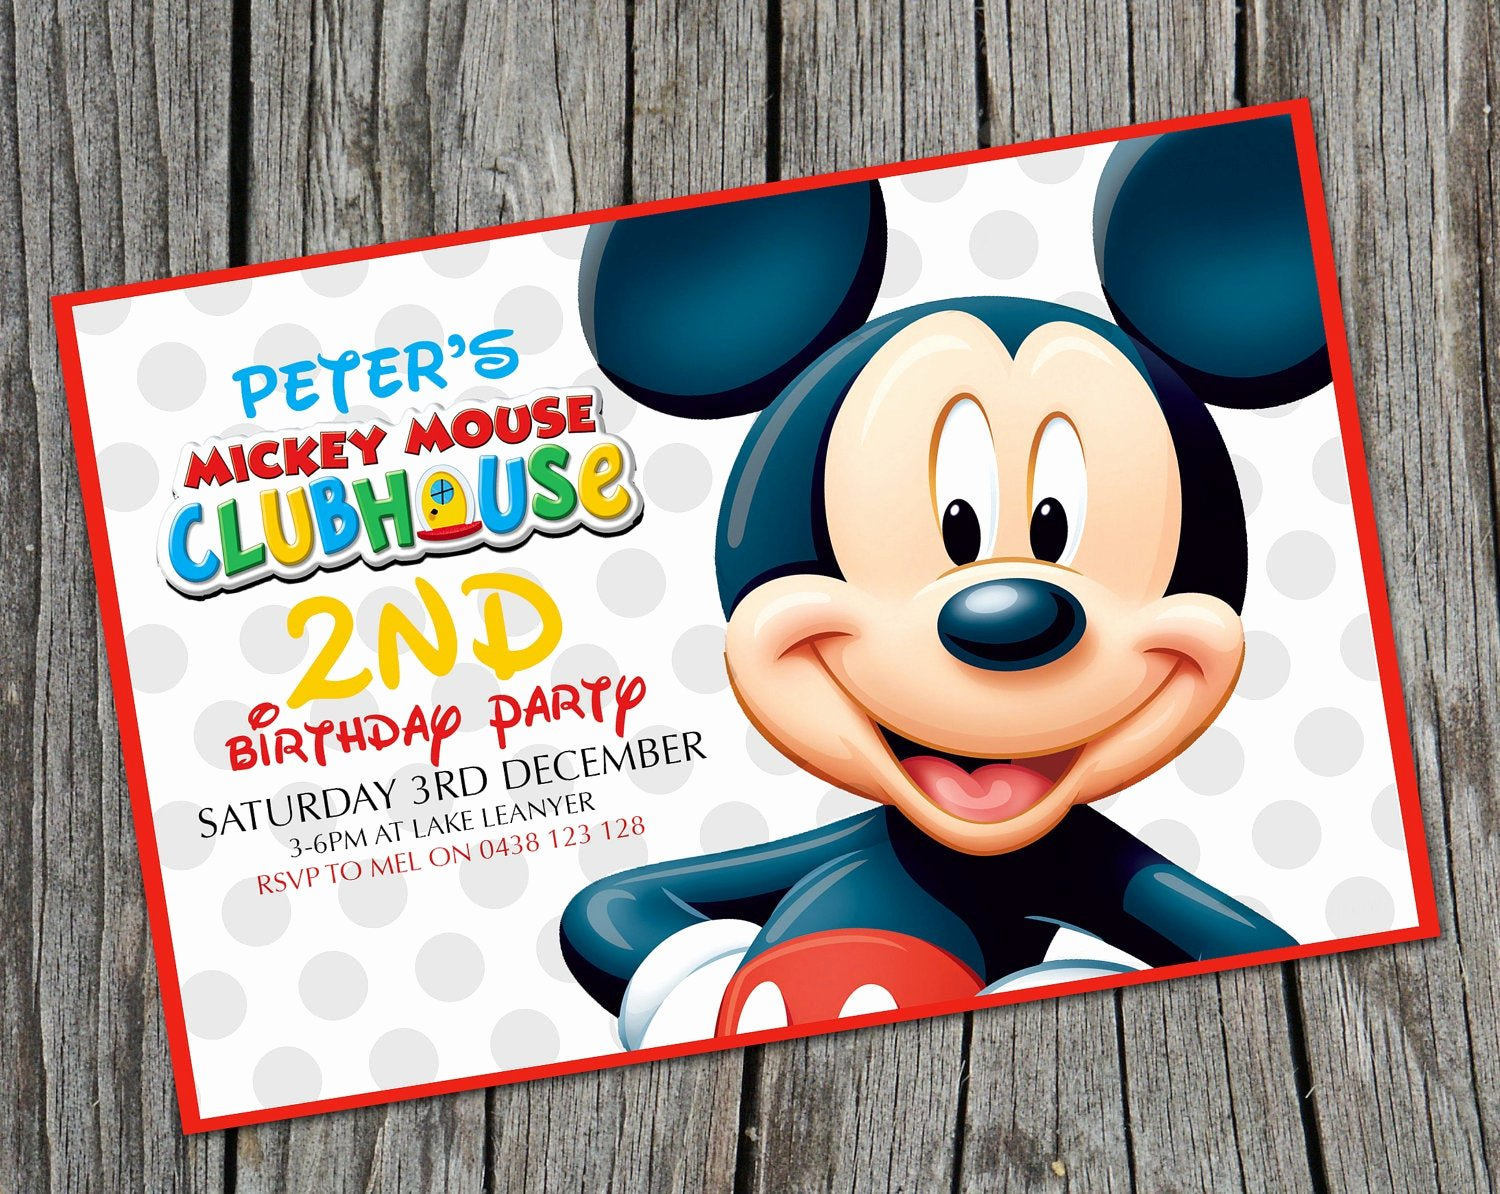 Mickey Mouse Clubhouse Invitations Awesome Kids Birthday Invitation Mickey Mouse Clubhouse Modern